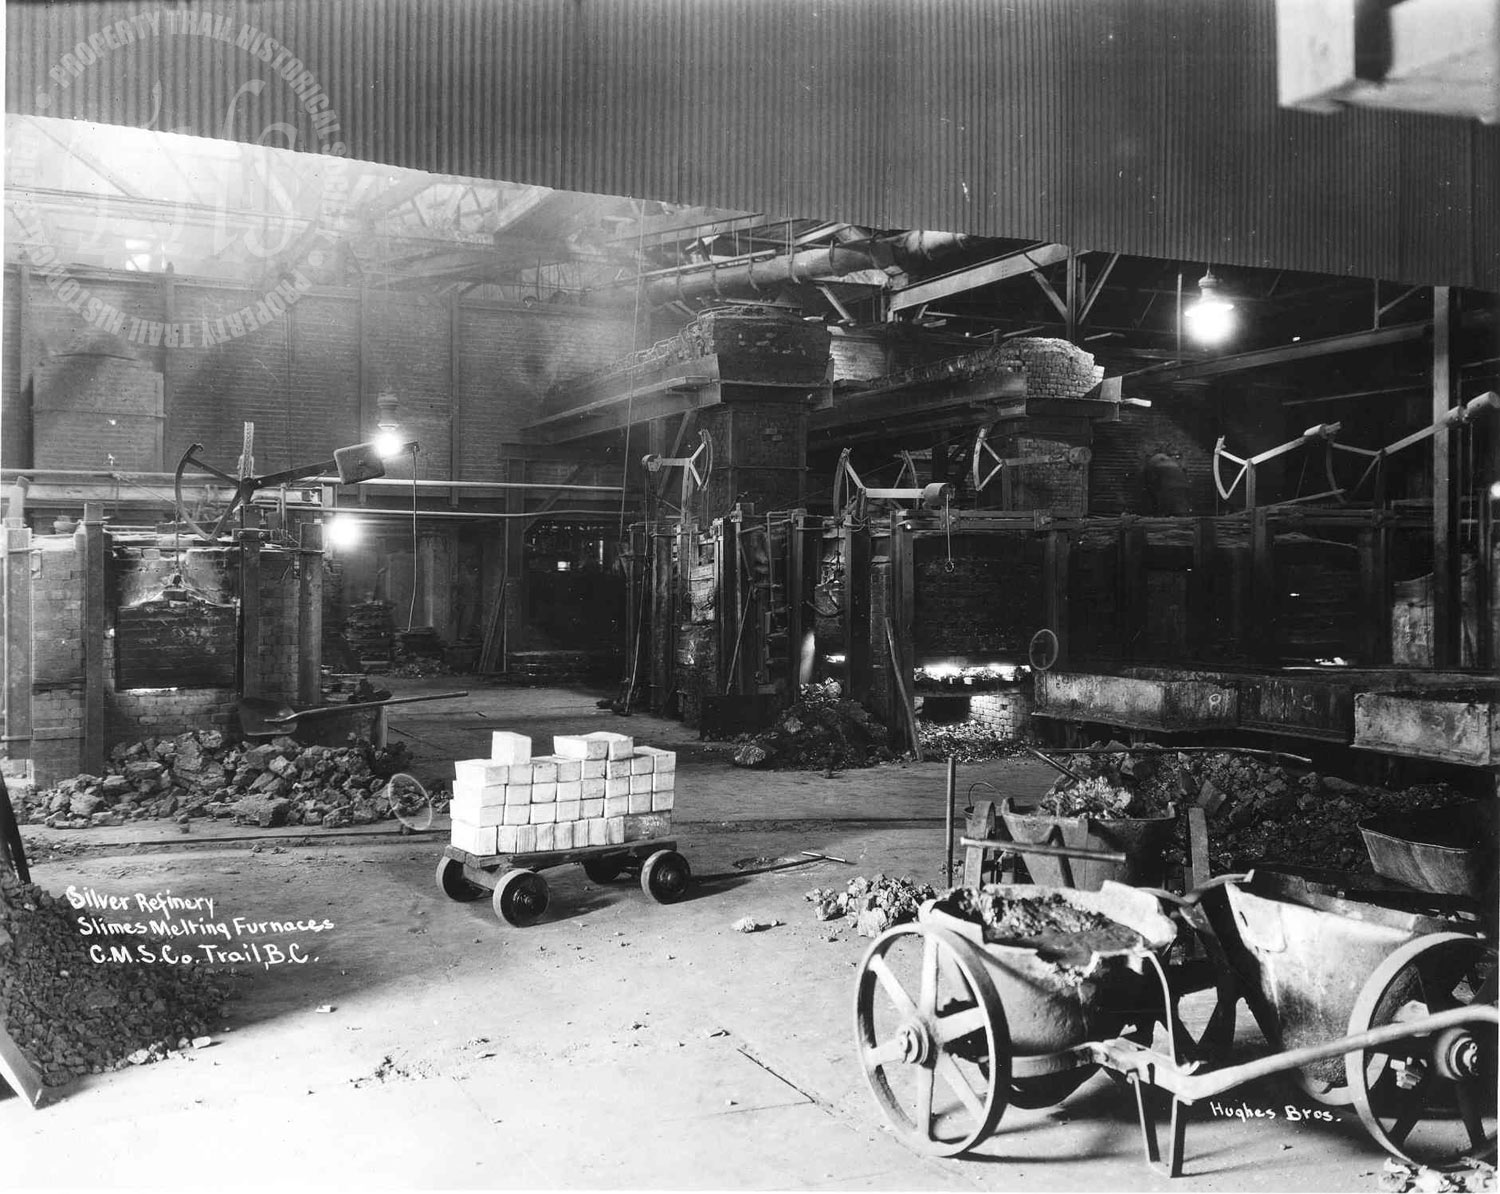 Silver refinery, slimes melting furnace, Trail Smelter (Hughes) - 1925